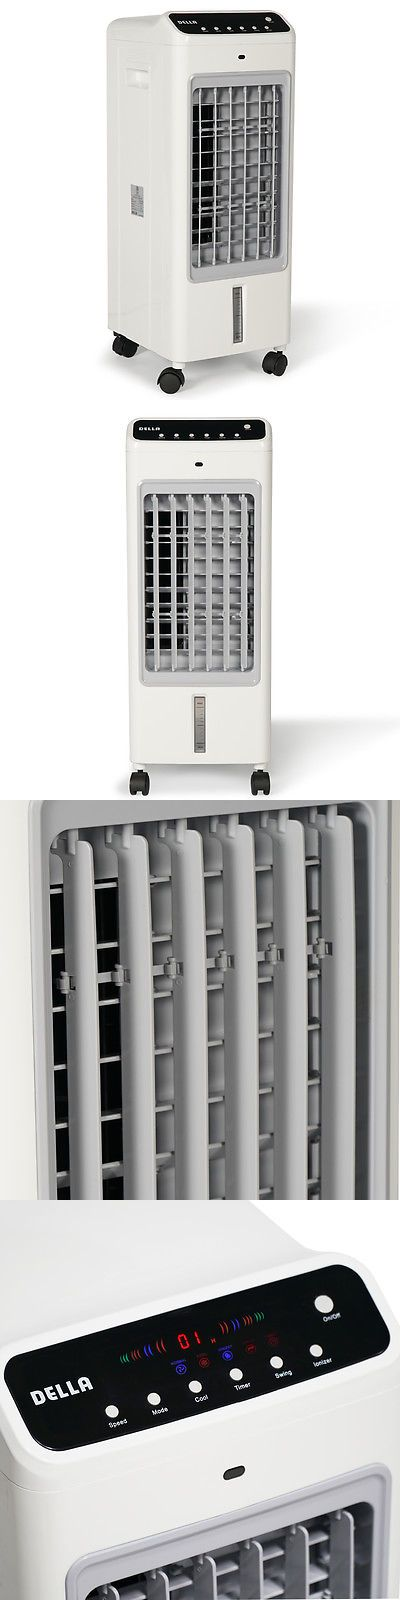 Air Conditioners 69202: Portable Evaporative Air Cooler Ionizer Humidifier Remote Tower Fan Cooling Lcd -> BUY IT NOW ONLY: $79.97 on eBay!